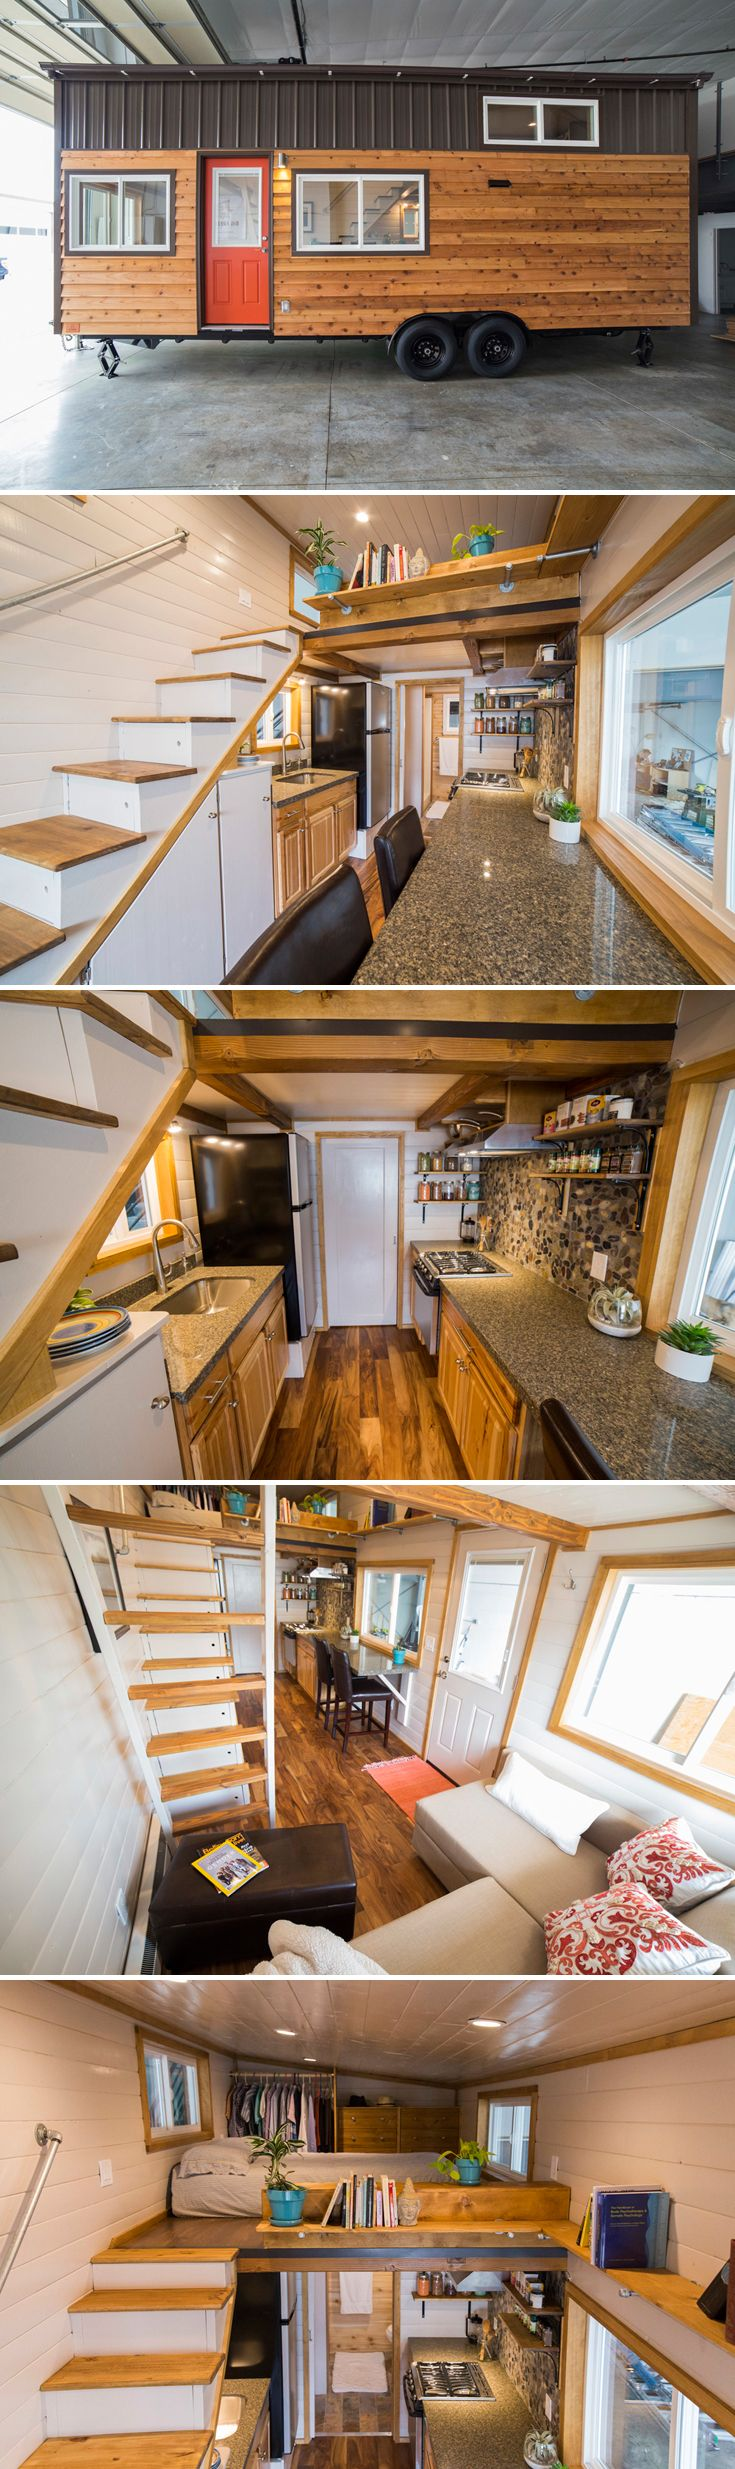 After completing several tiny houses, Shannon Black decided to build full-time and started a business, Big Freedom Tiny Homes, in Bellingham, Washington.